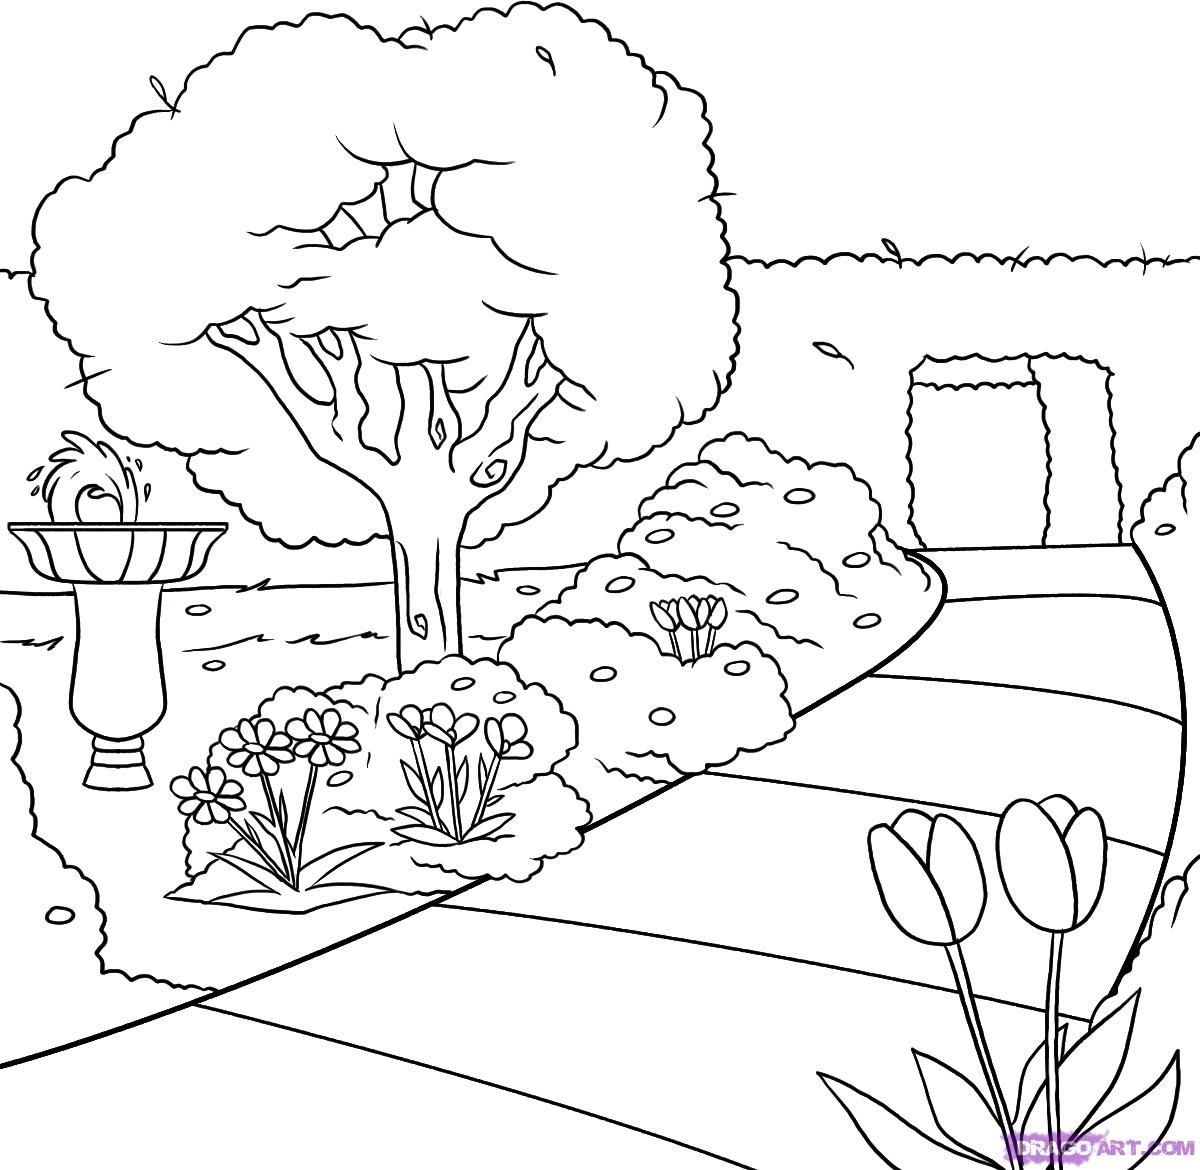 How To Draw A Garden Step 6